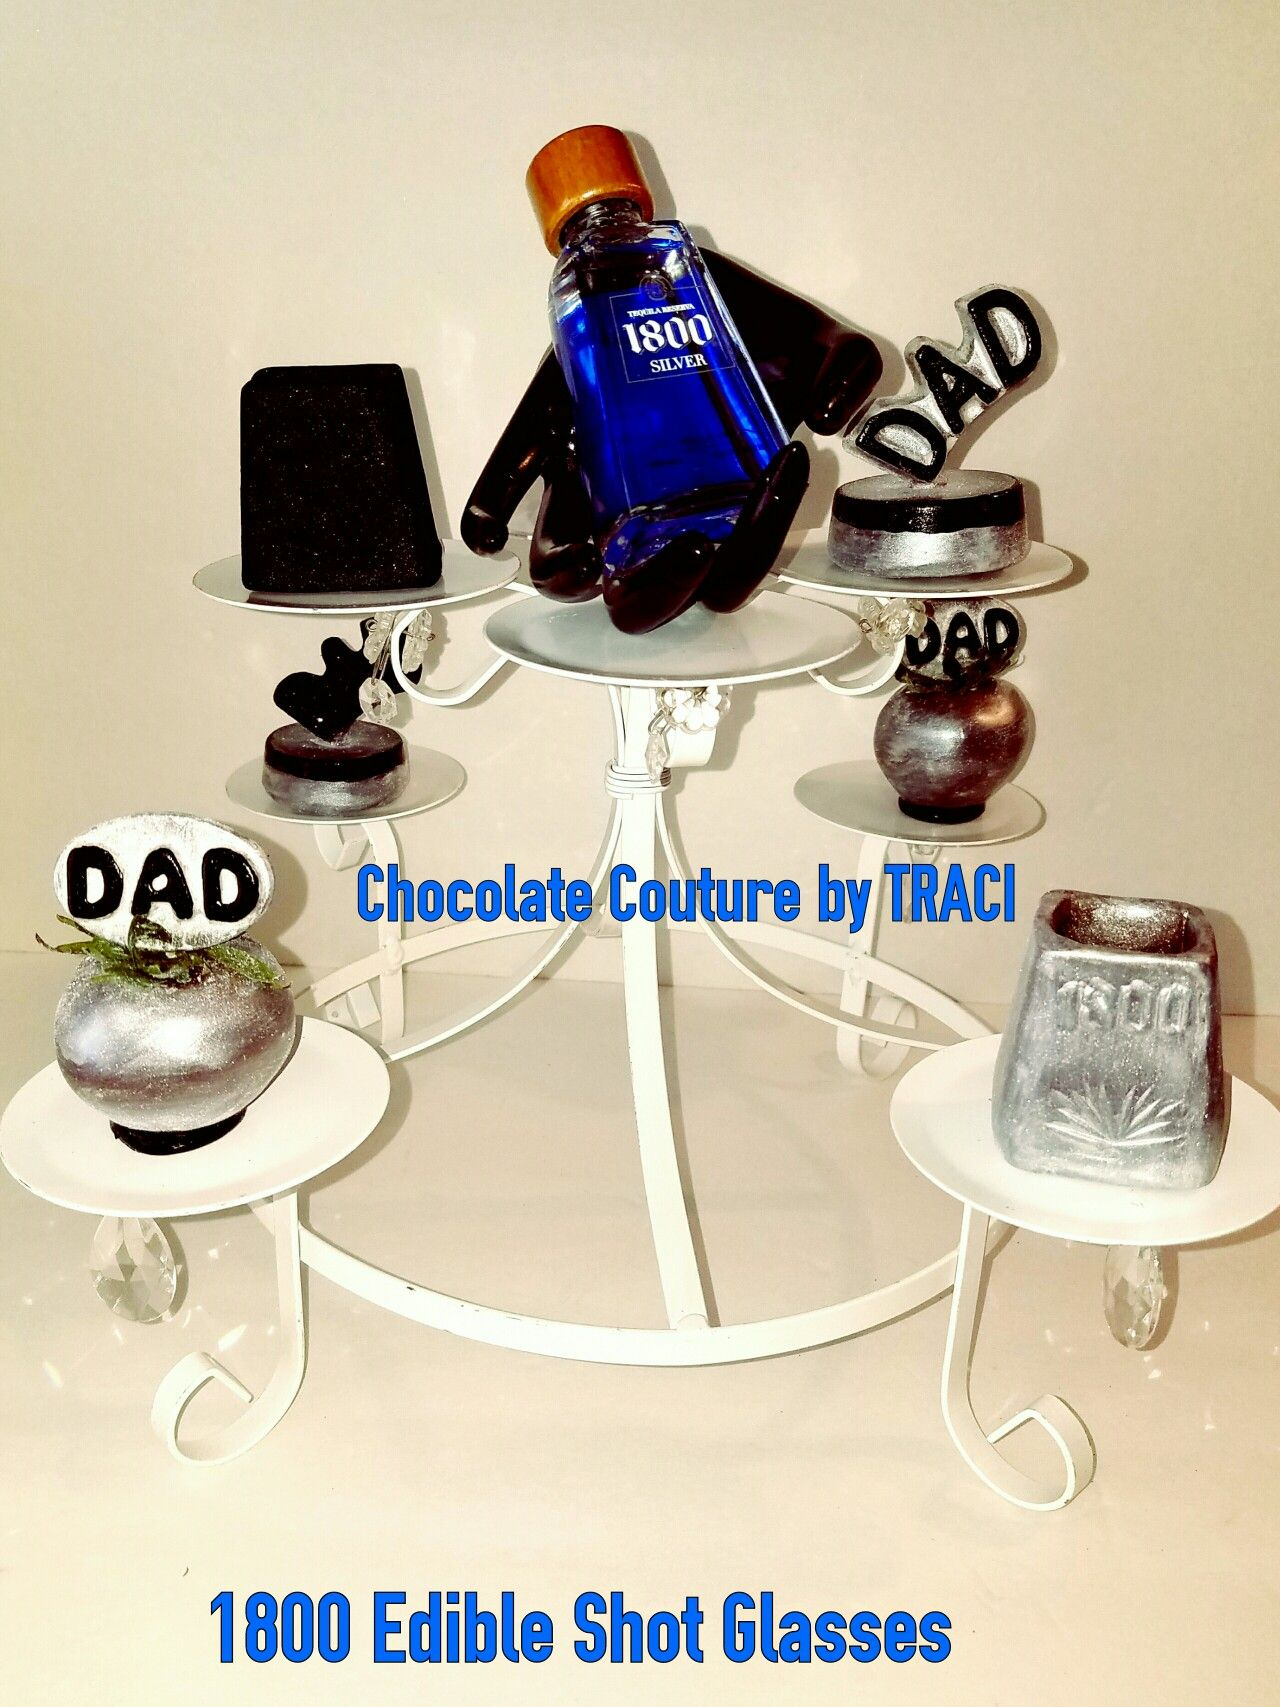 Chocolate Couture by TRACI.. 1800 Chocolate Shot Glasses, Oreos  Strawberries with EDIBLE  (DAD) picks... U.S. PATENT  20120328742 Decorative Toothpick Mold